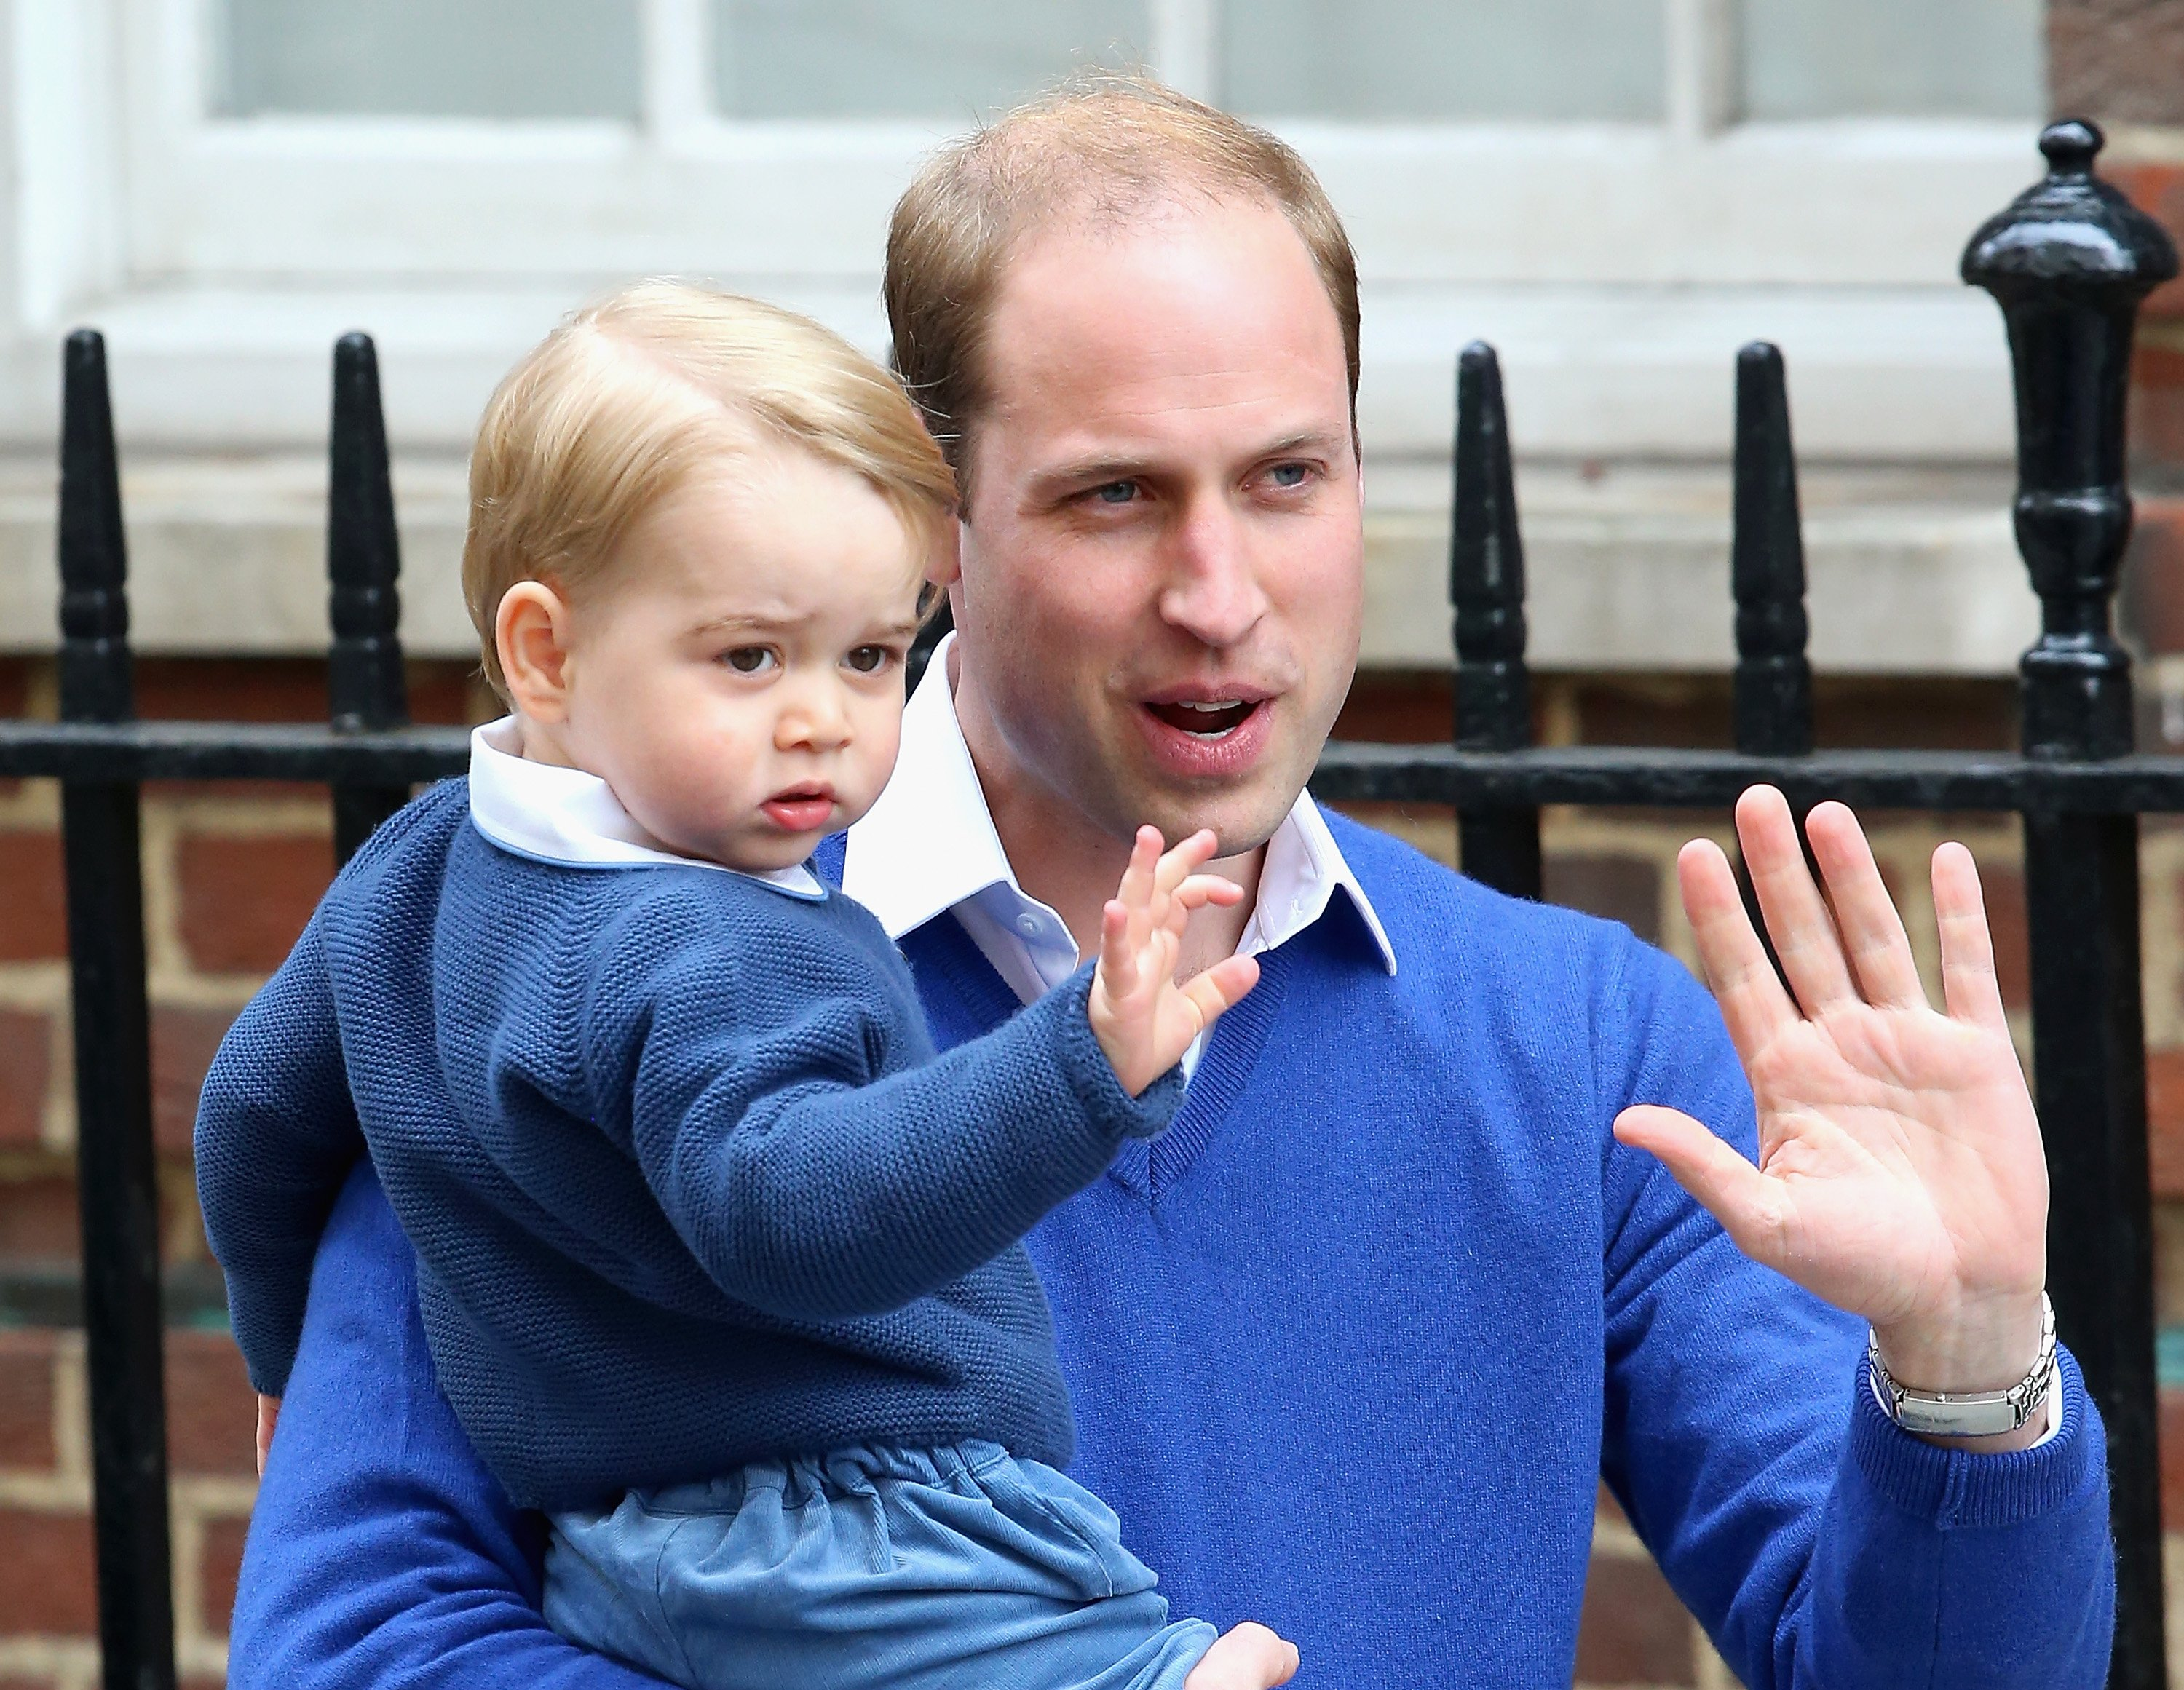 Prince William and Prince George identically dresses as they arrive at St Mary's Hospital on May 2, 2015, in London, England. | Source: Getty Images.